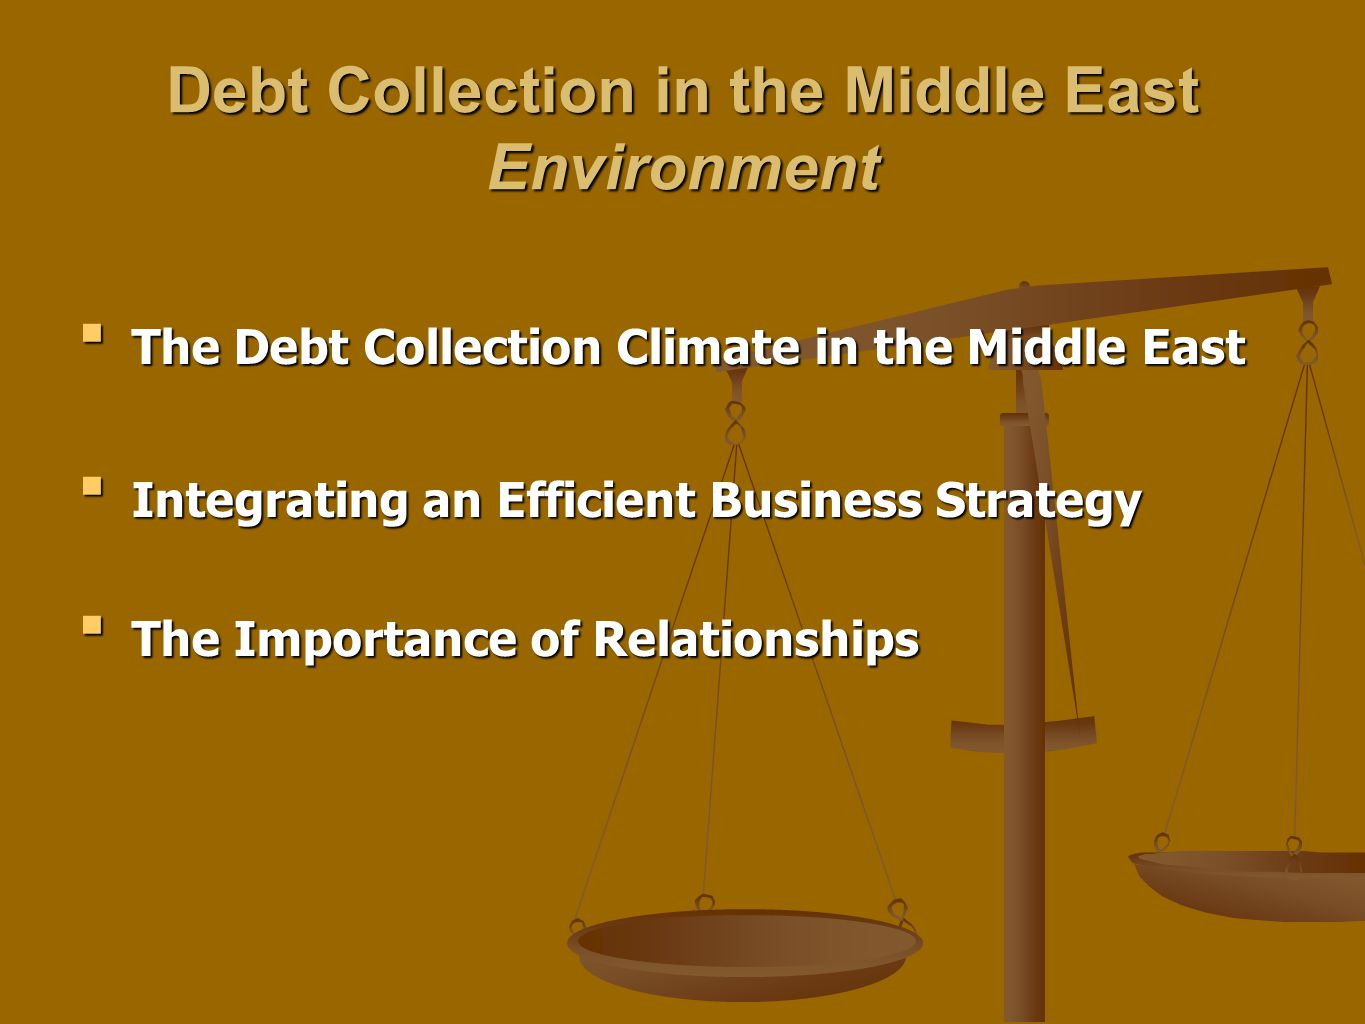 Debt Collection in the Middle East Environment The Debt Collection Climate in the Middle EastThe Debt Collection Climate in the Middle East Integrating an Efficient Business StrategyIntegrating an Efficient Business Strategy The Importance of RelationshipsThe Importance of Relationships